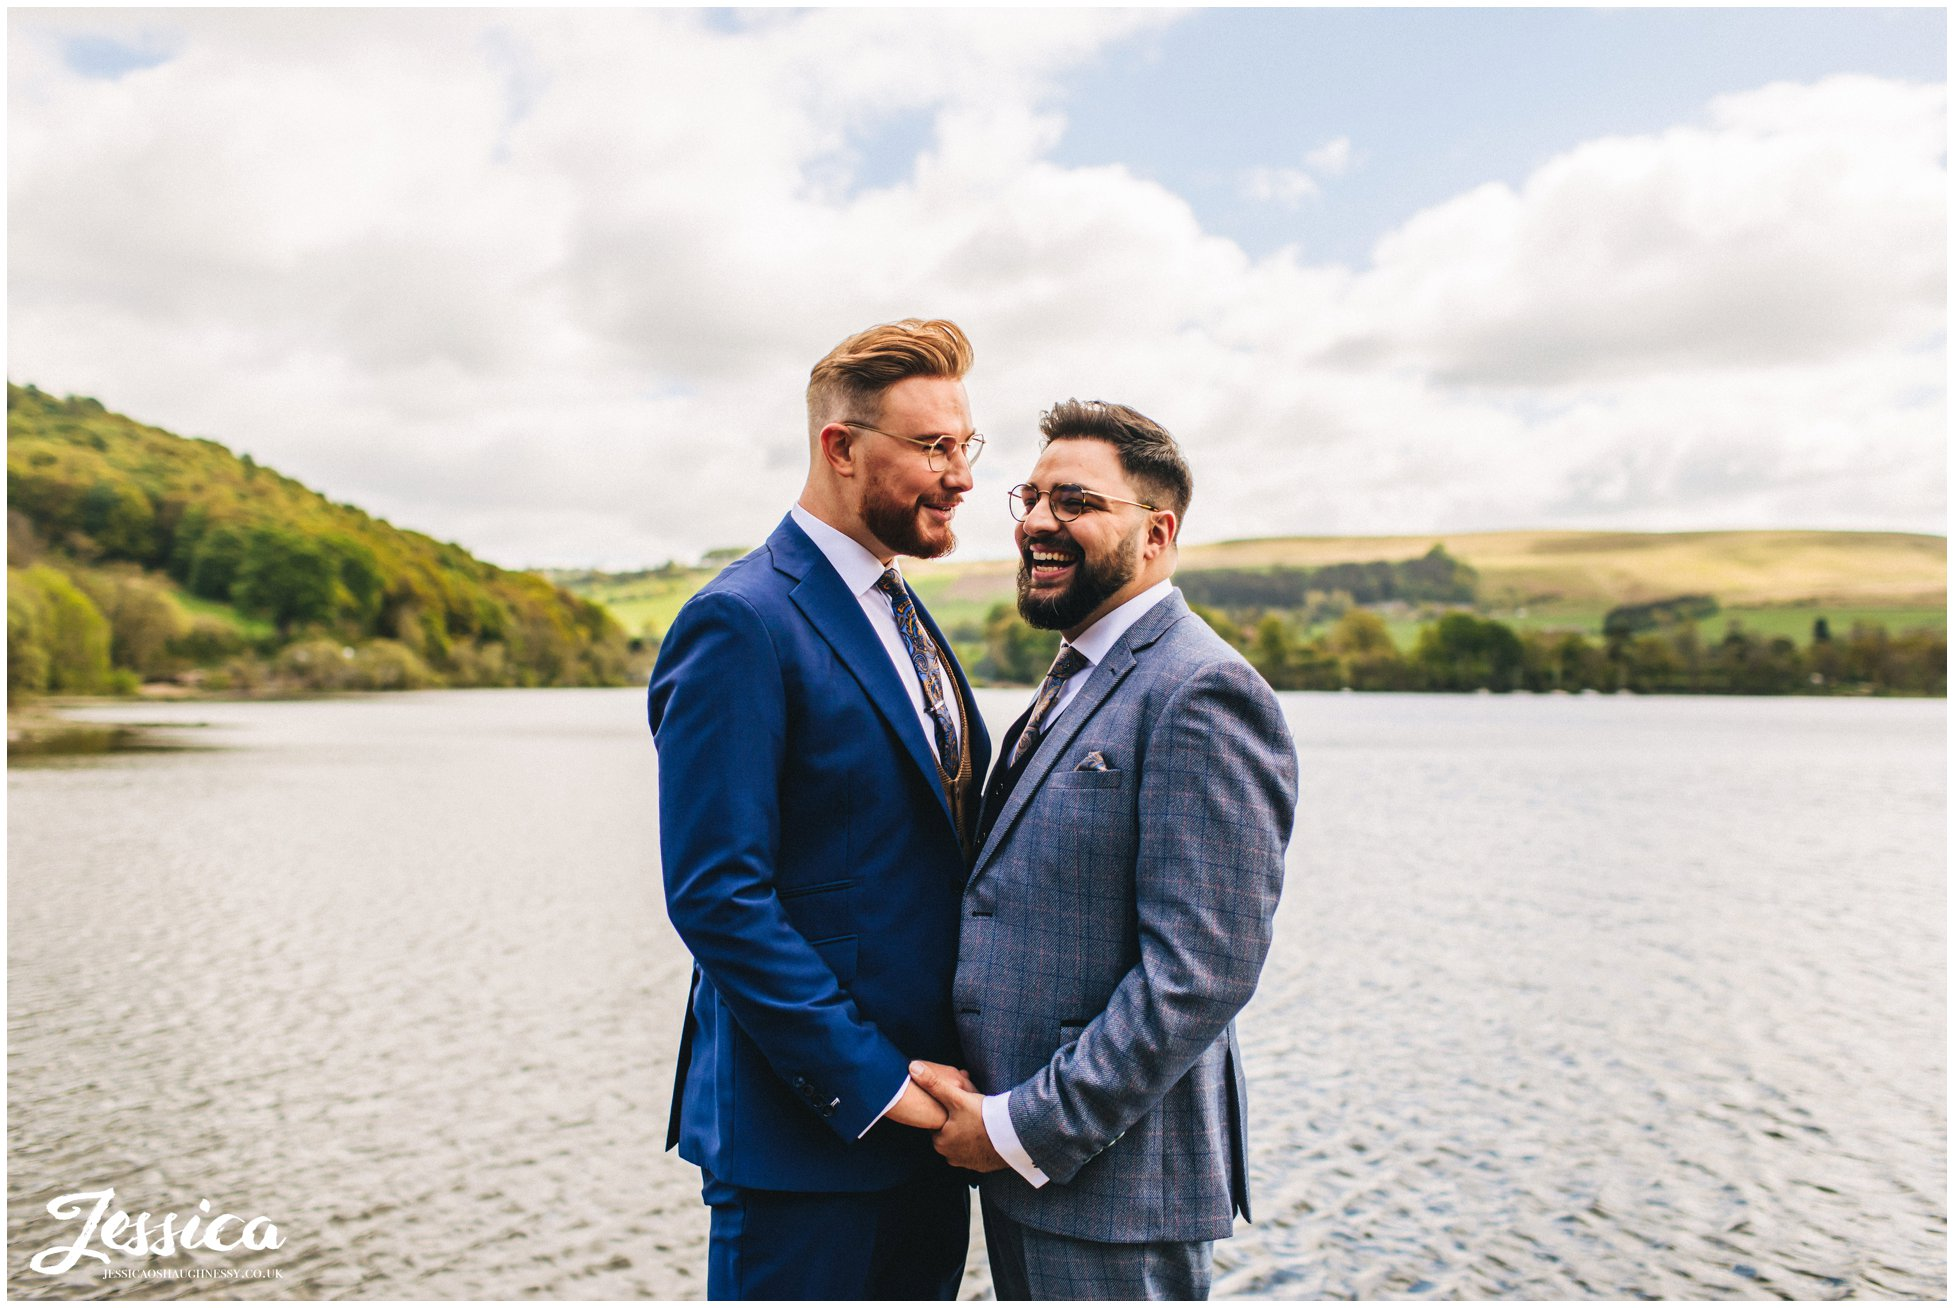 the grooms hold each other before heading to their ceremony in the lakes